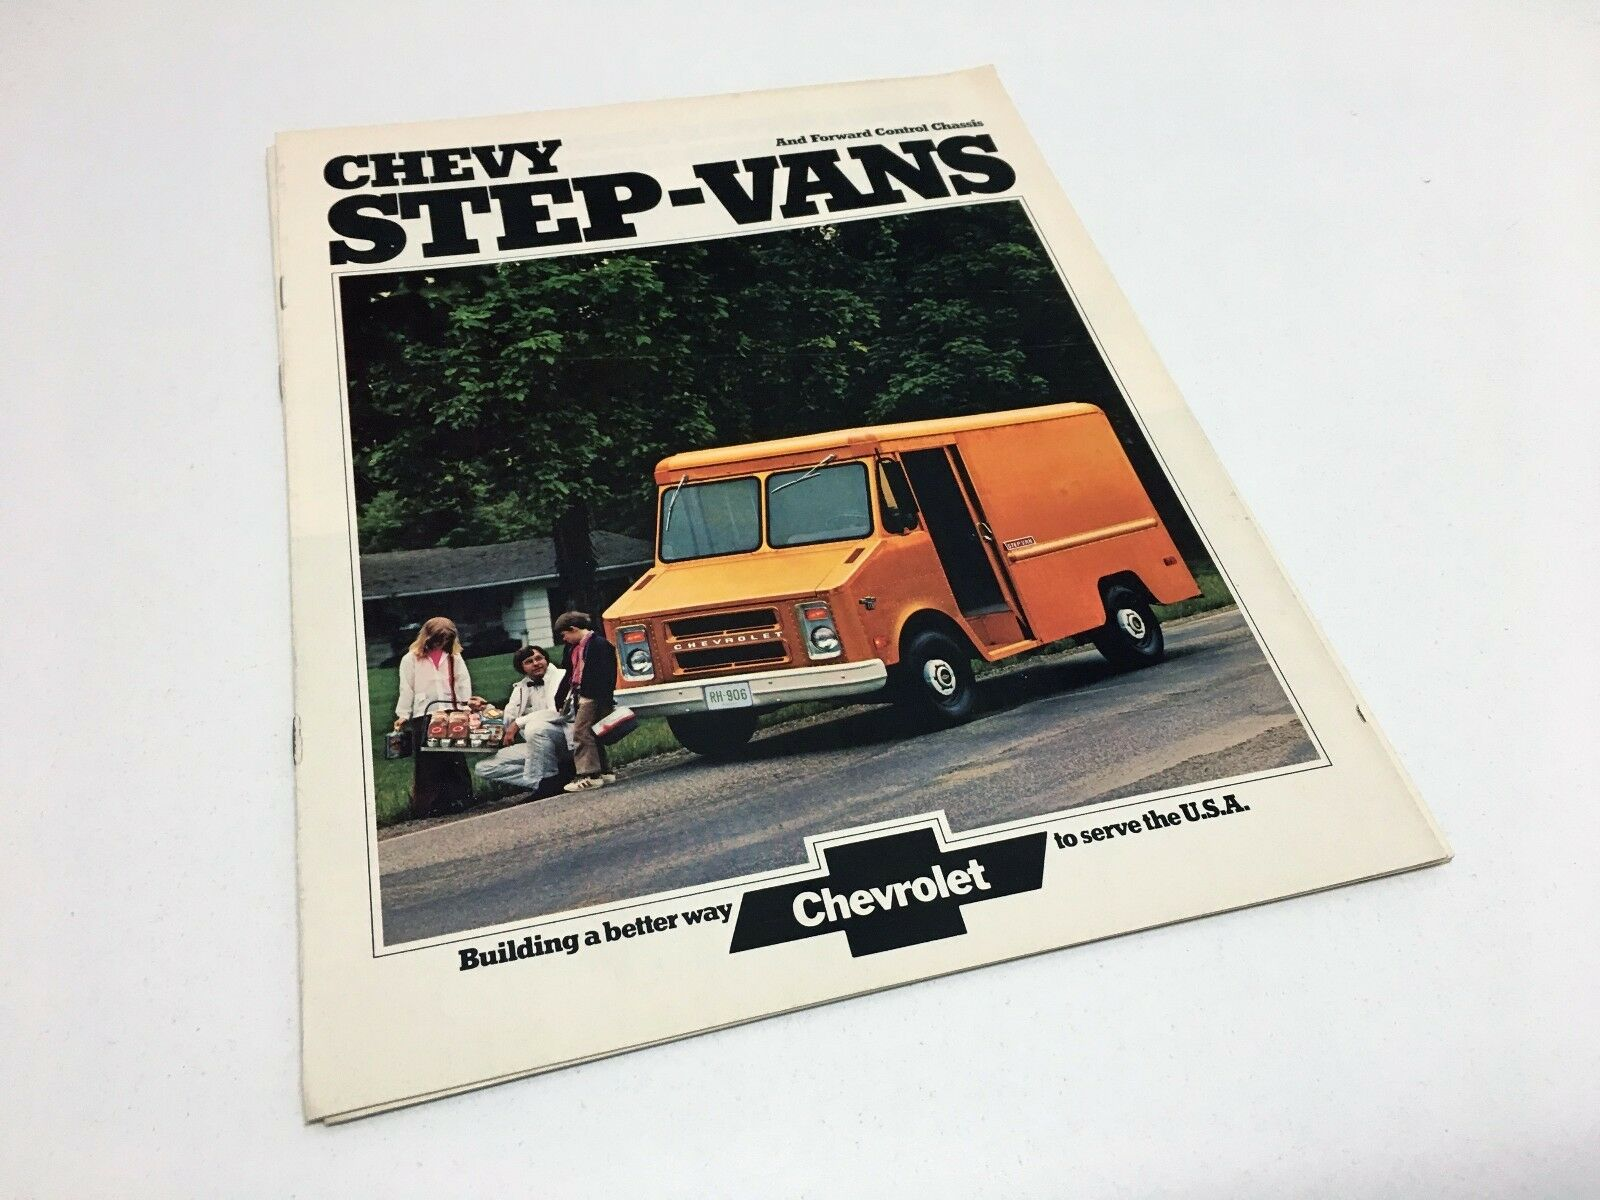 Chevy Wiring Diagrams 1978 Gmc P10 P20 P30 Electrical 1970 Diagram 1974 Chevrolet Step Vans Brochure 19 50 Picclick